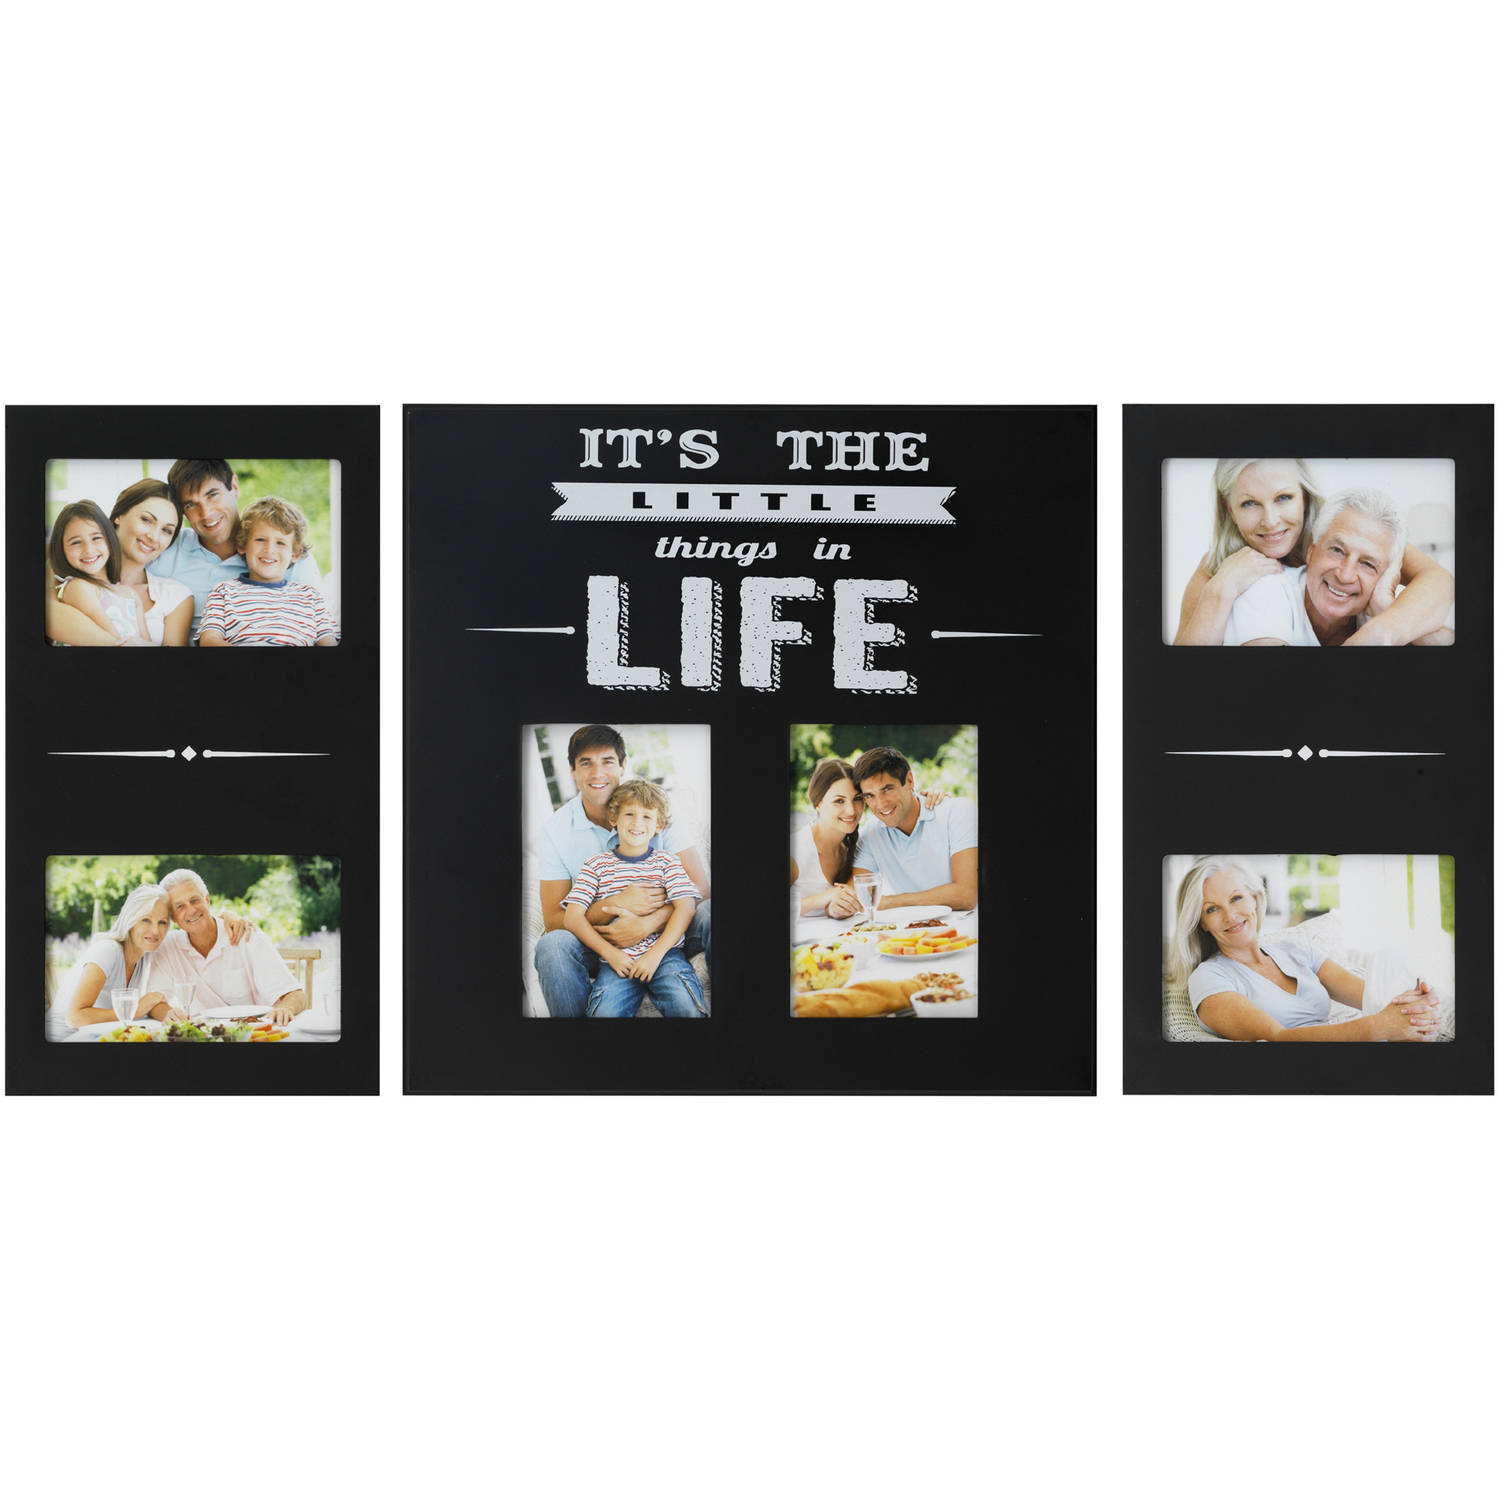 Melannco 6-Opening Its The Little Things In Life Photo Collage, Set of 3, Picture Frame